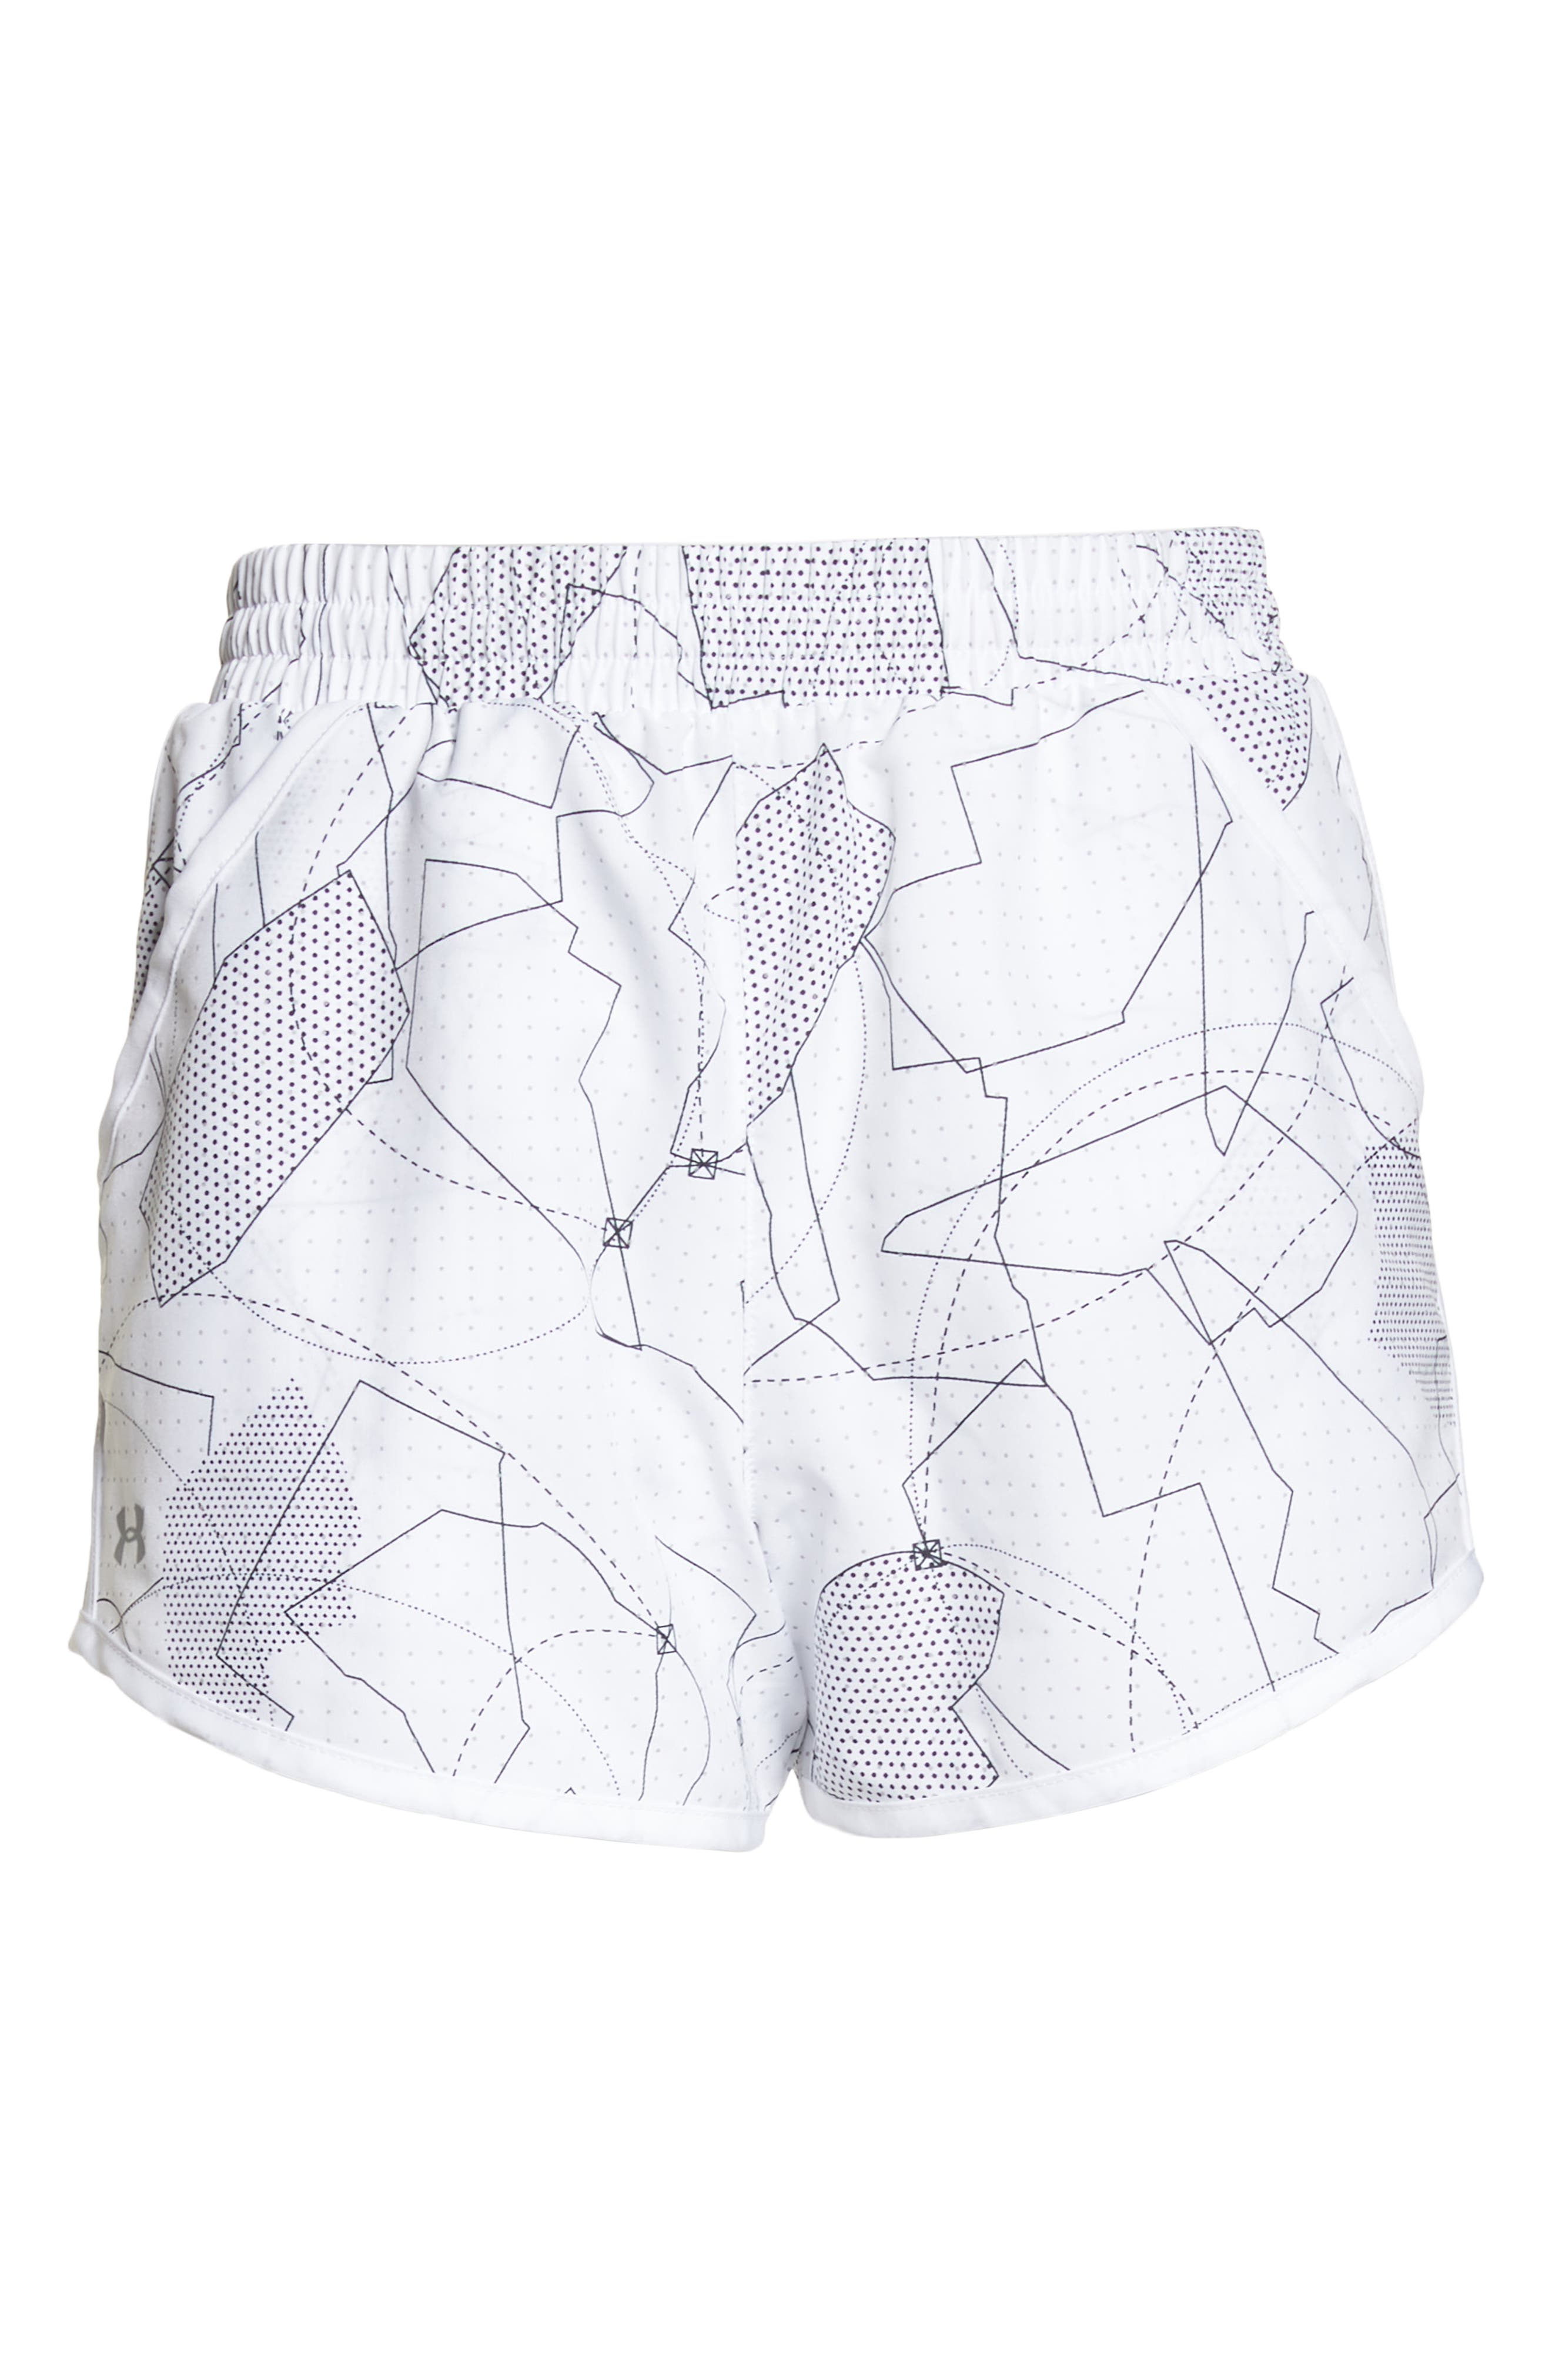 Fly-By Print Shorts,                             Alternate thumbnail 7, color,                             White/ White/ Reflective